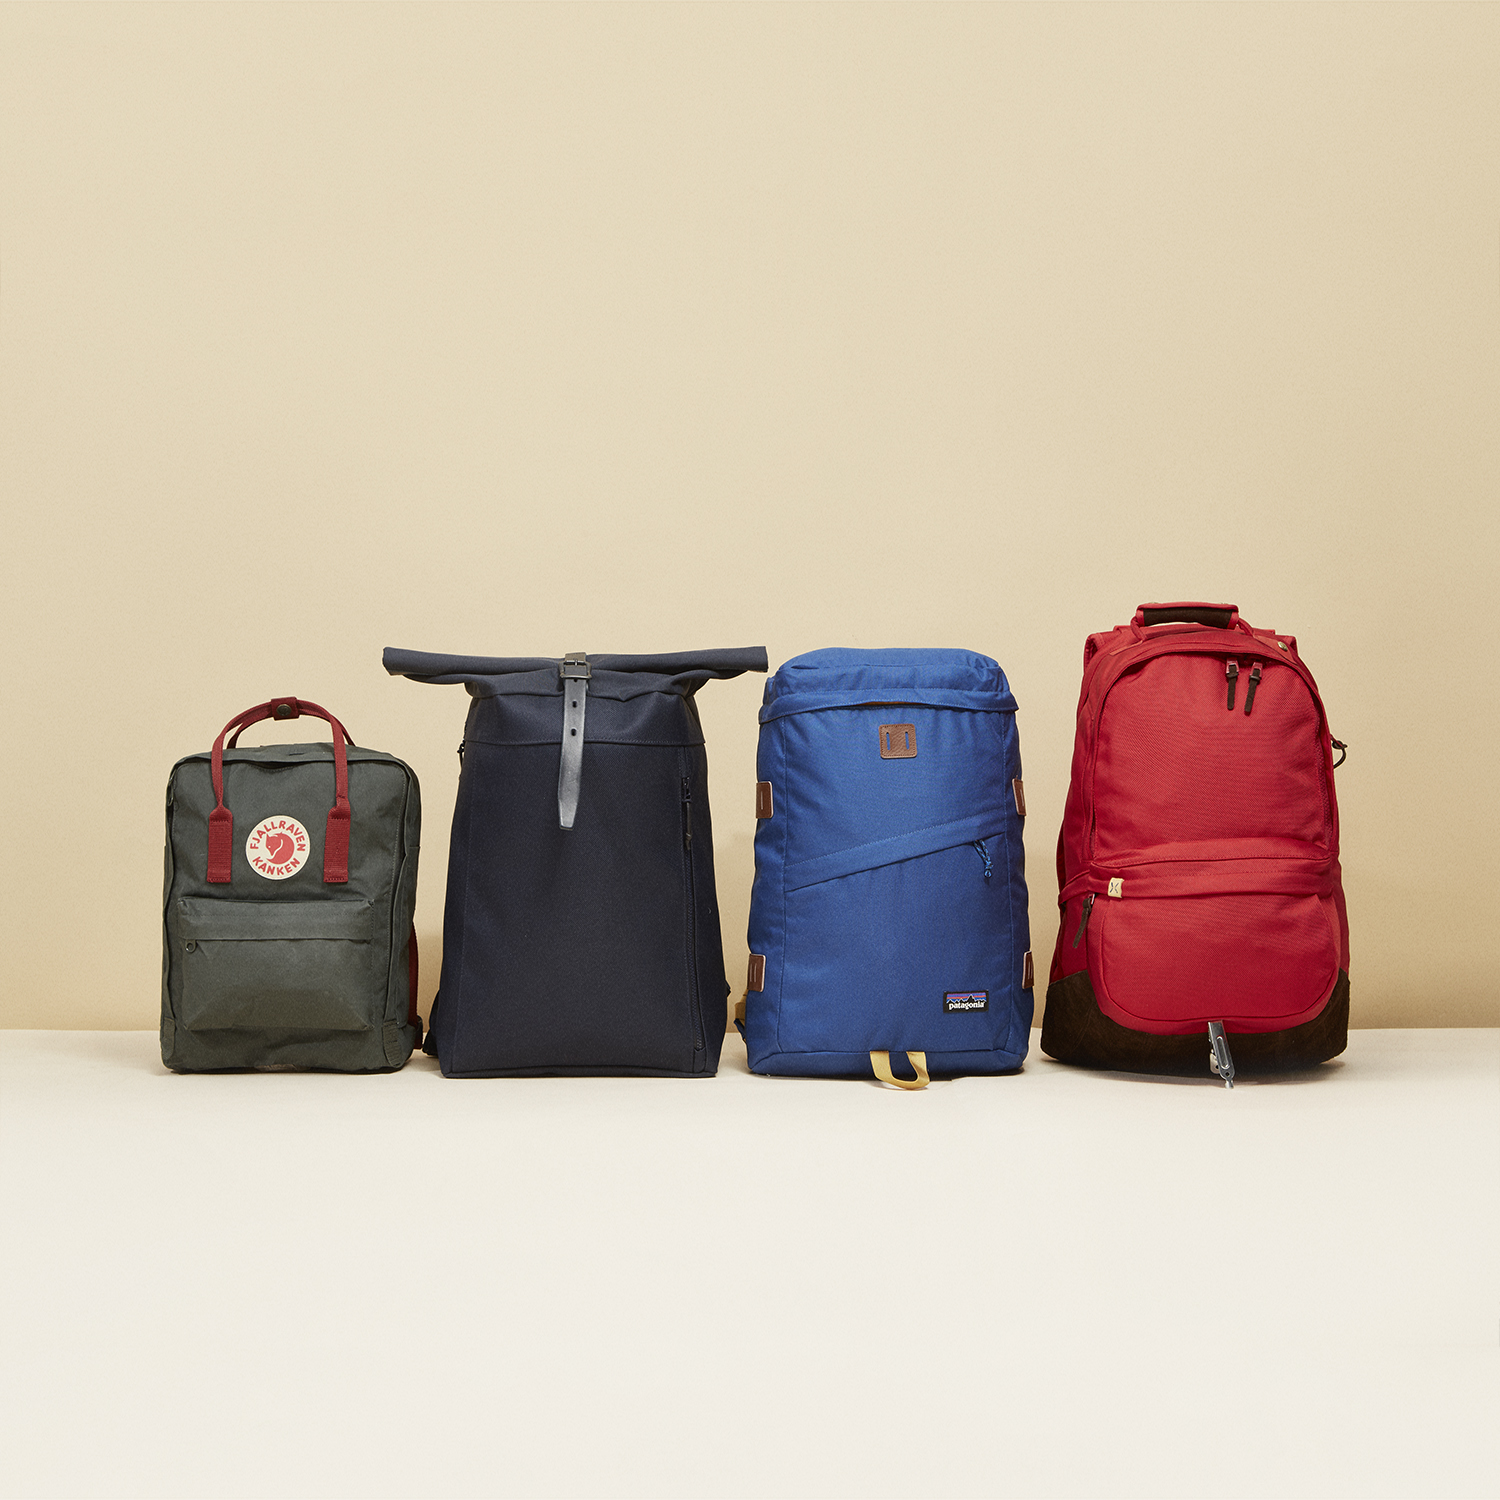 How to choose the right bag